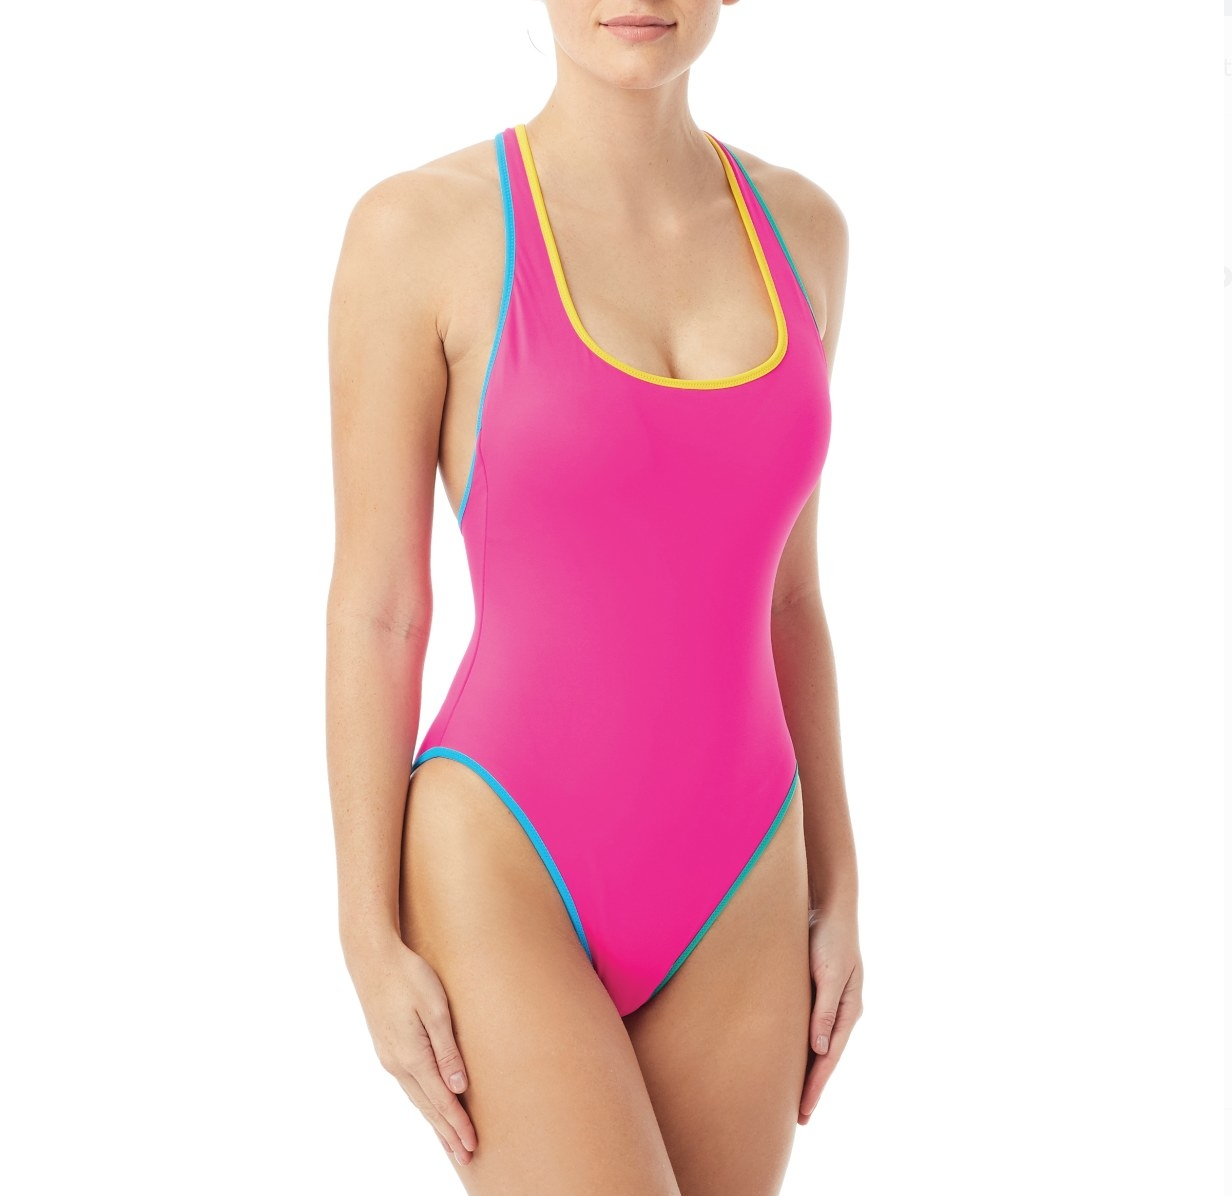 A model in a neon pink one piece with yellow and blue seams